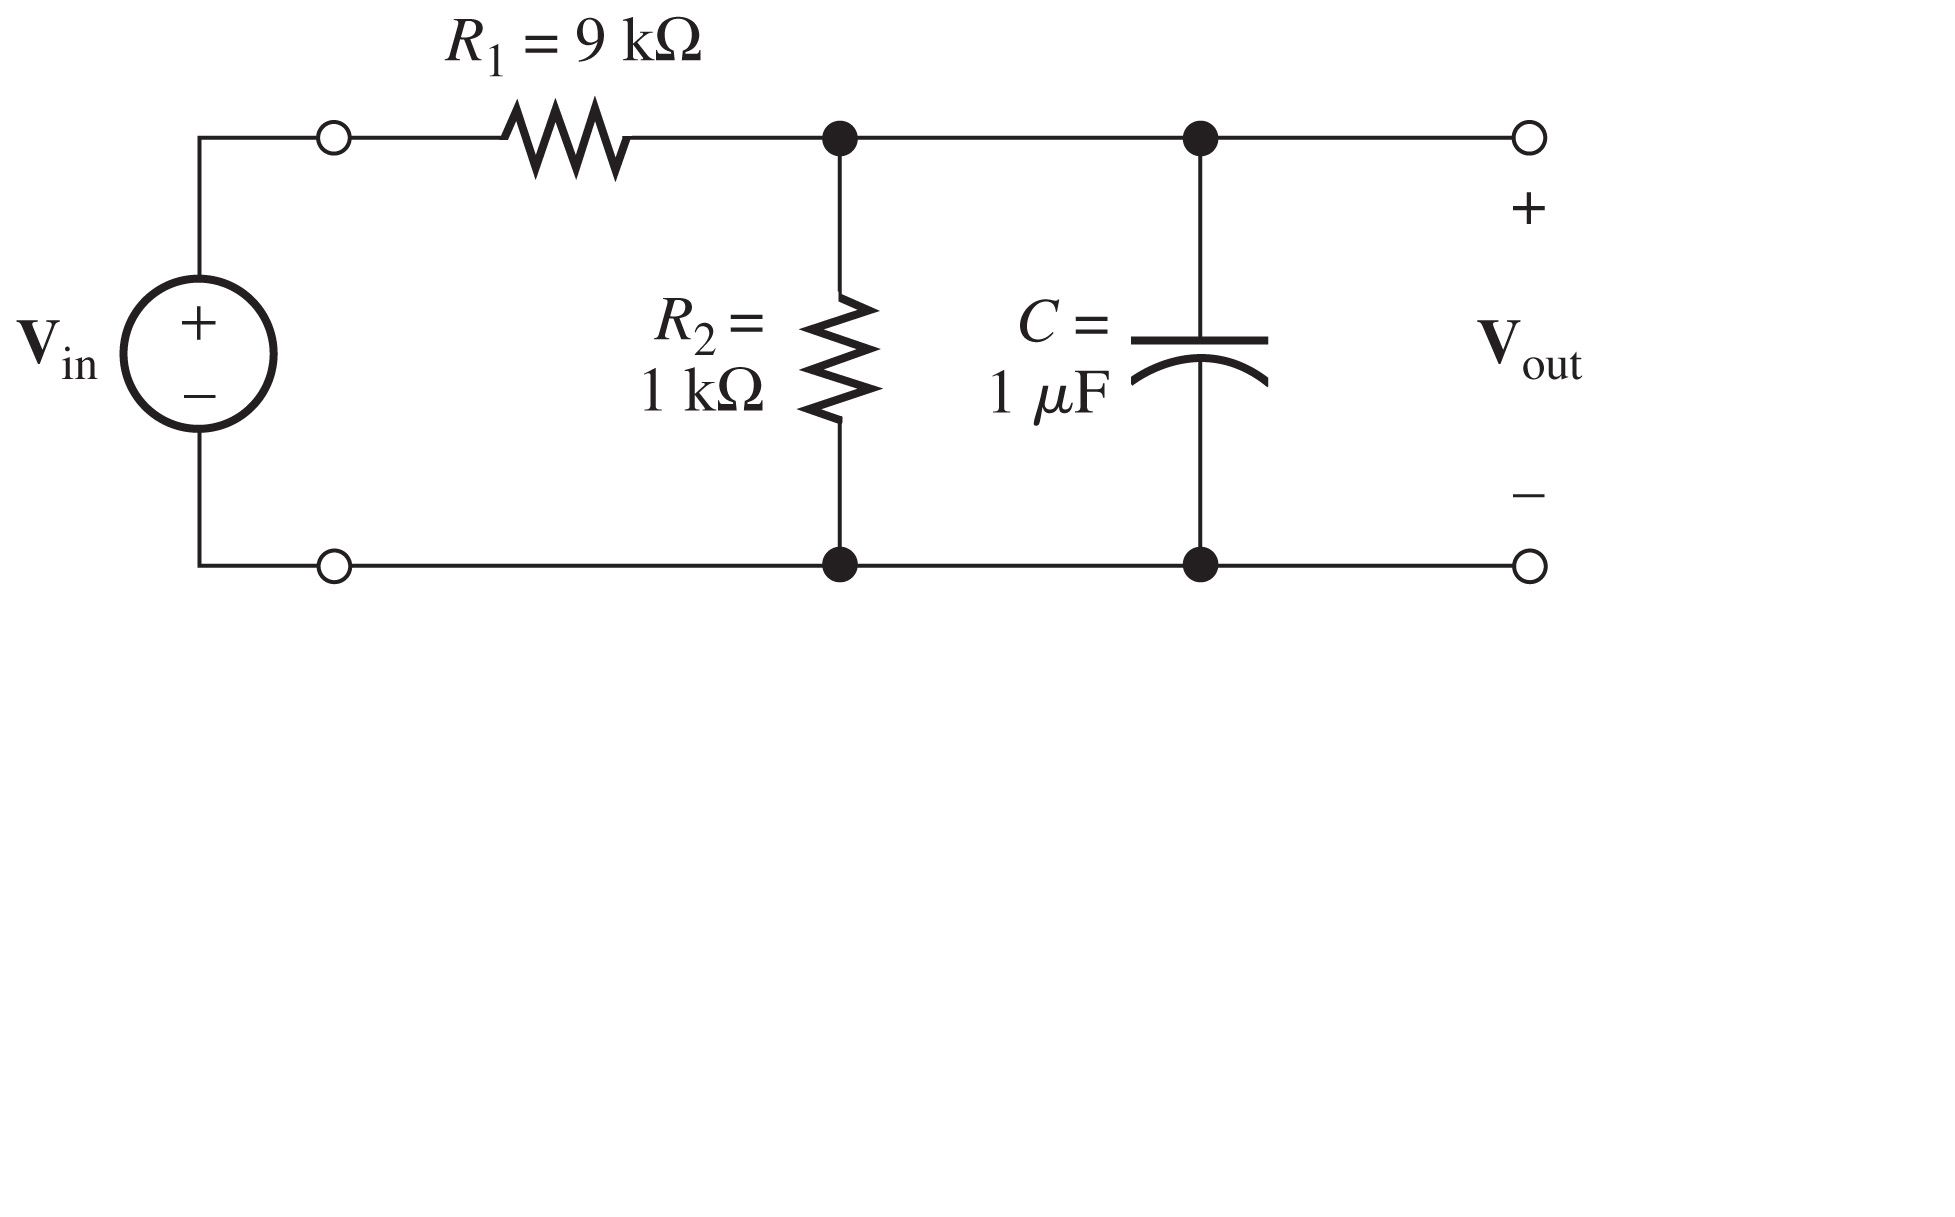 Determine the voltage Vout for the circuit shown i